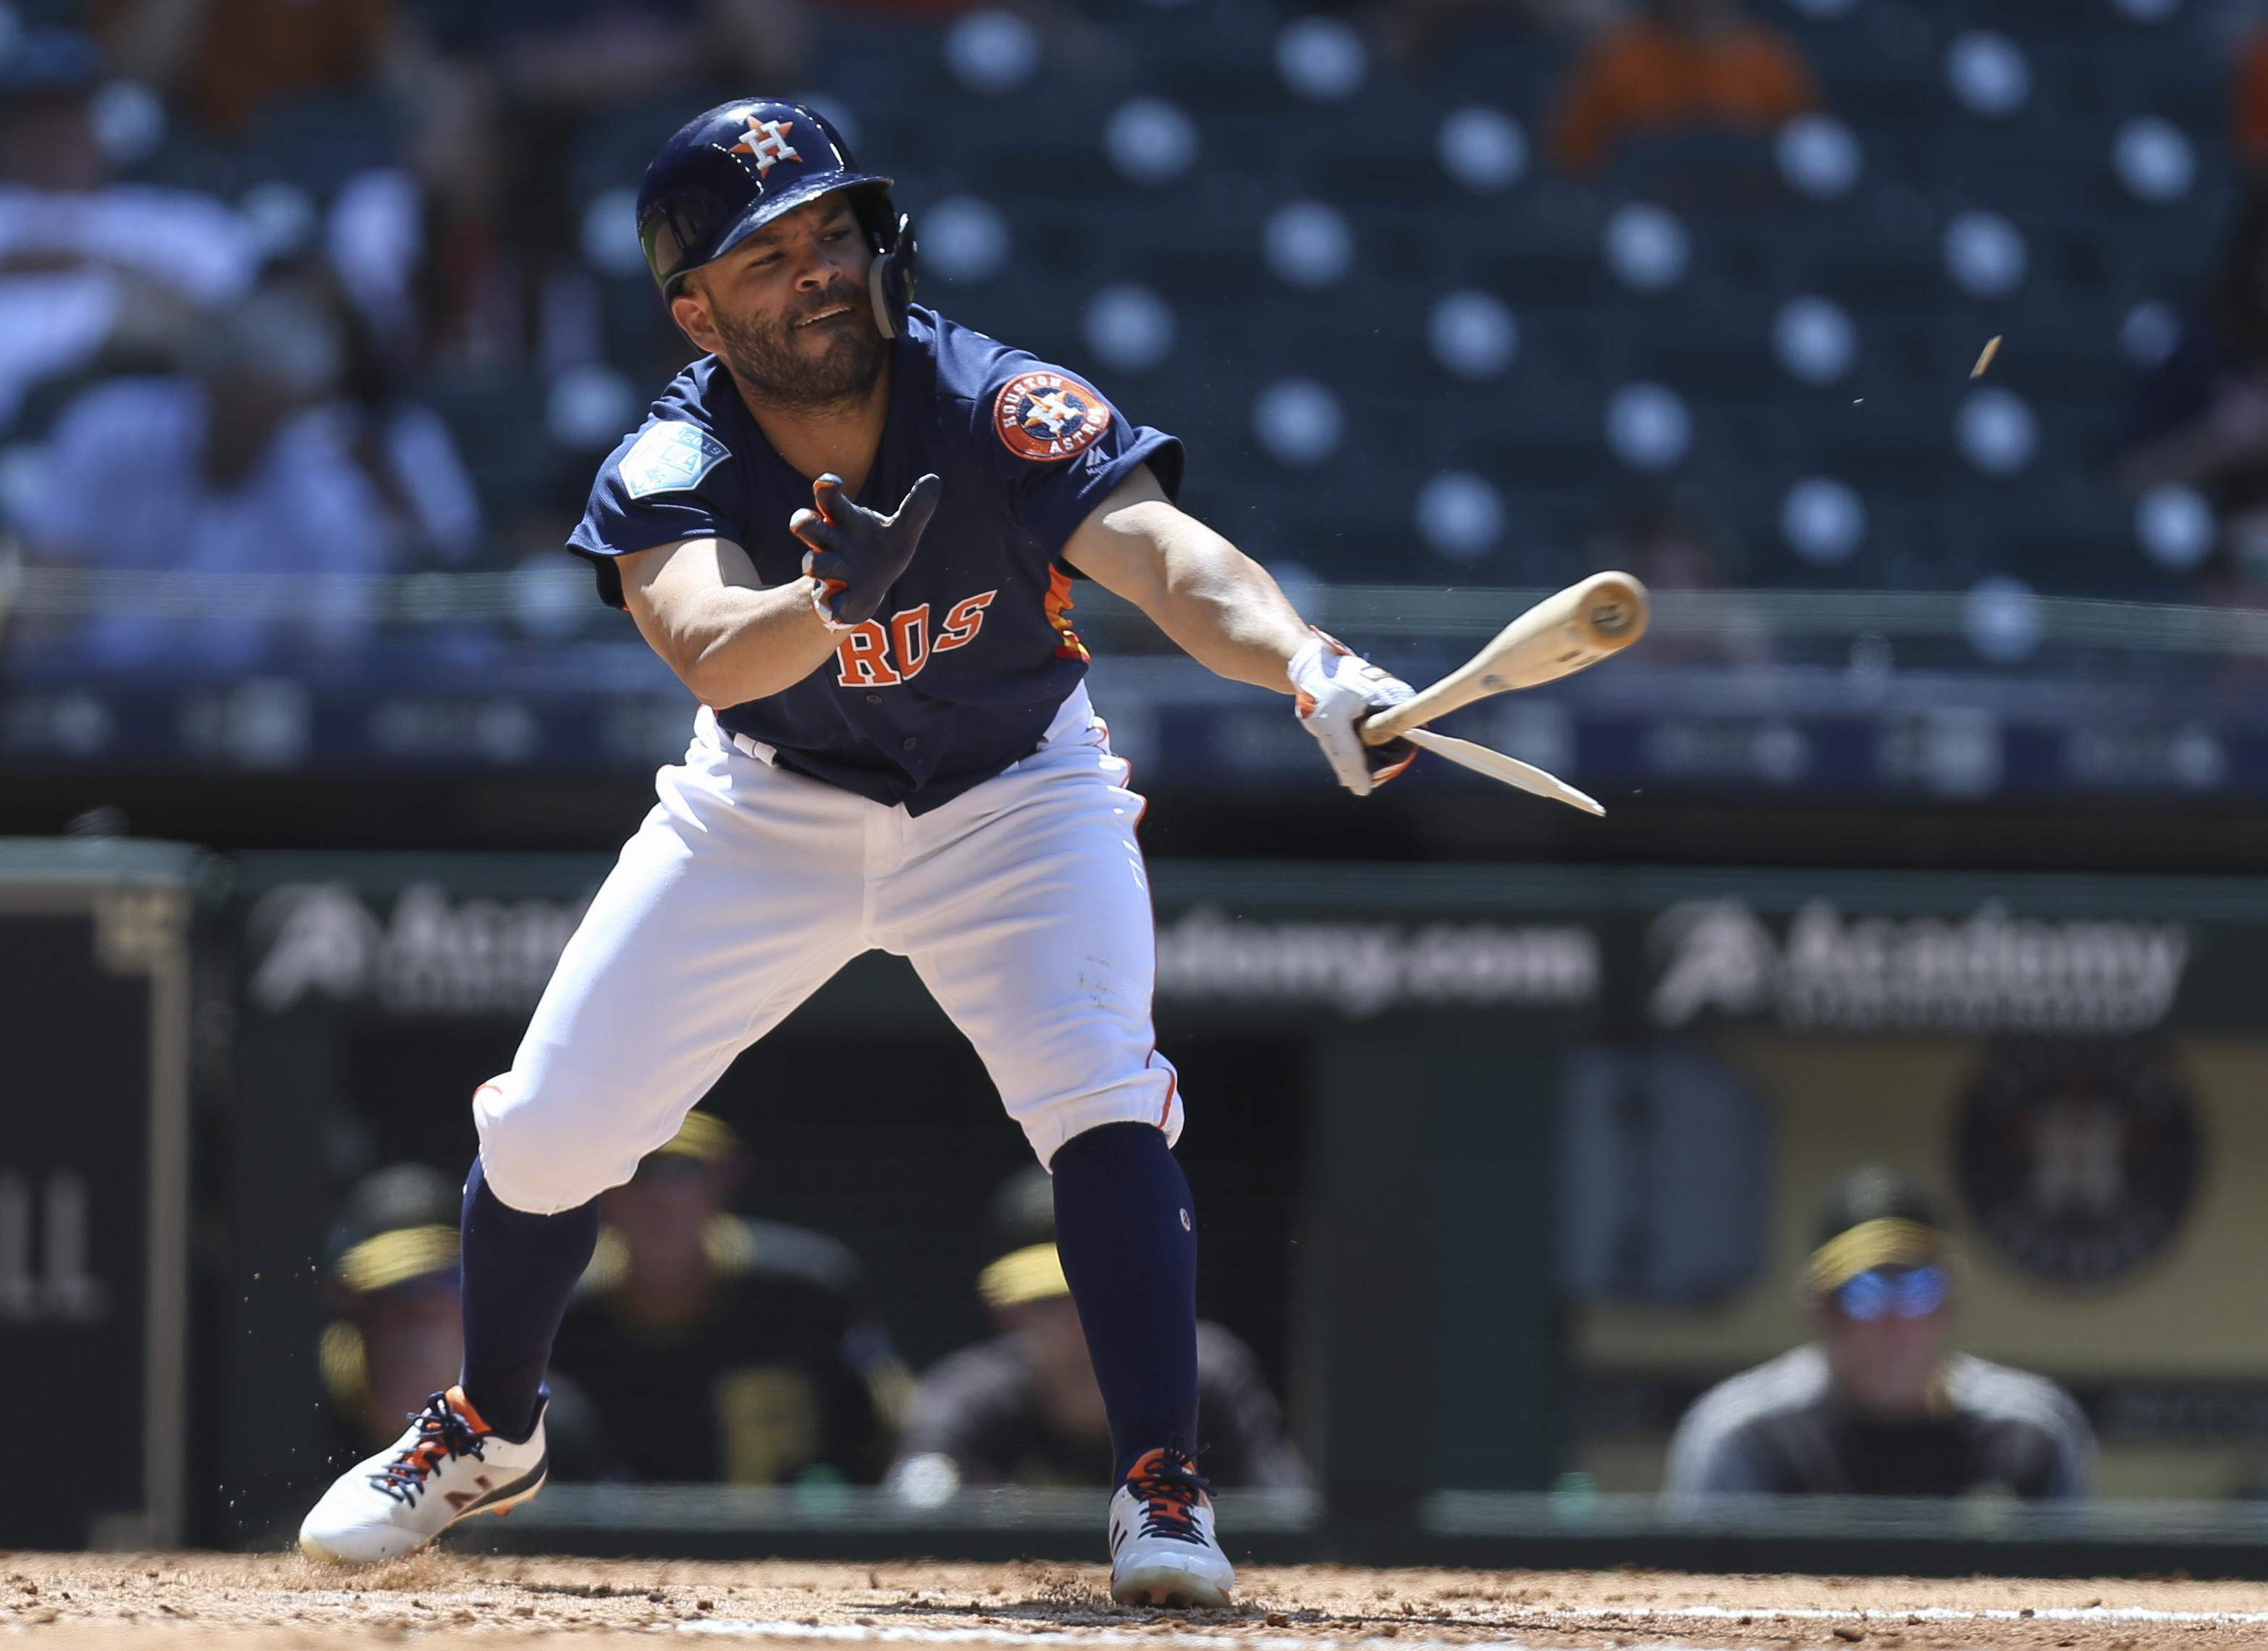 ebedc3ceab0 Houston Astros second baseman Jose Altuve swings and breaks his bat during  an exhibition game on